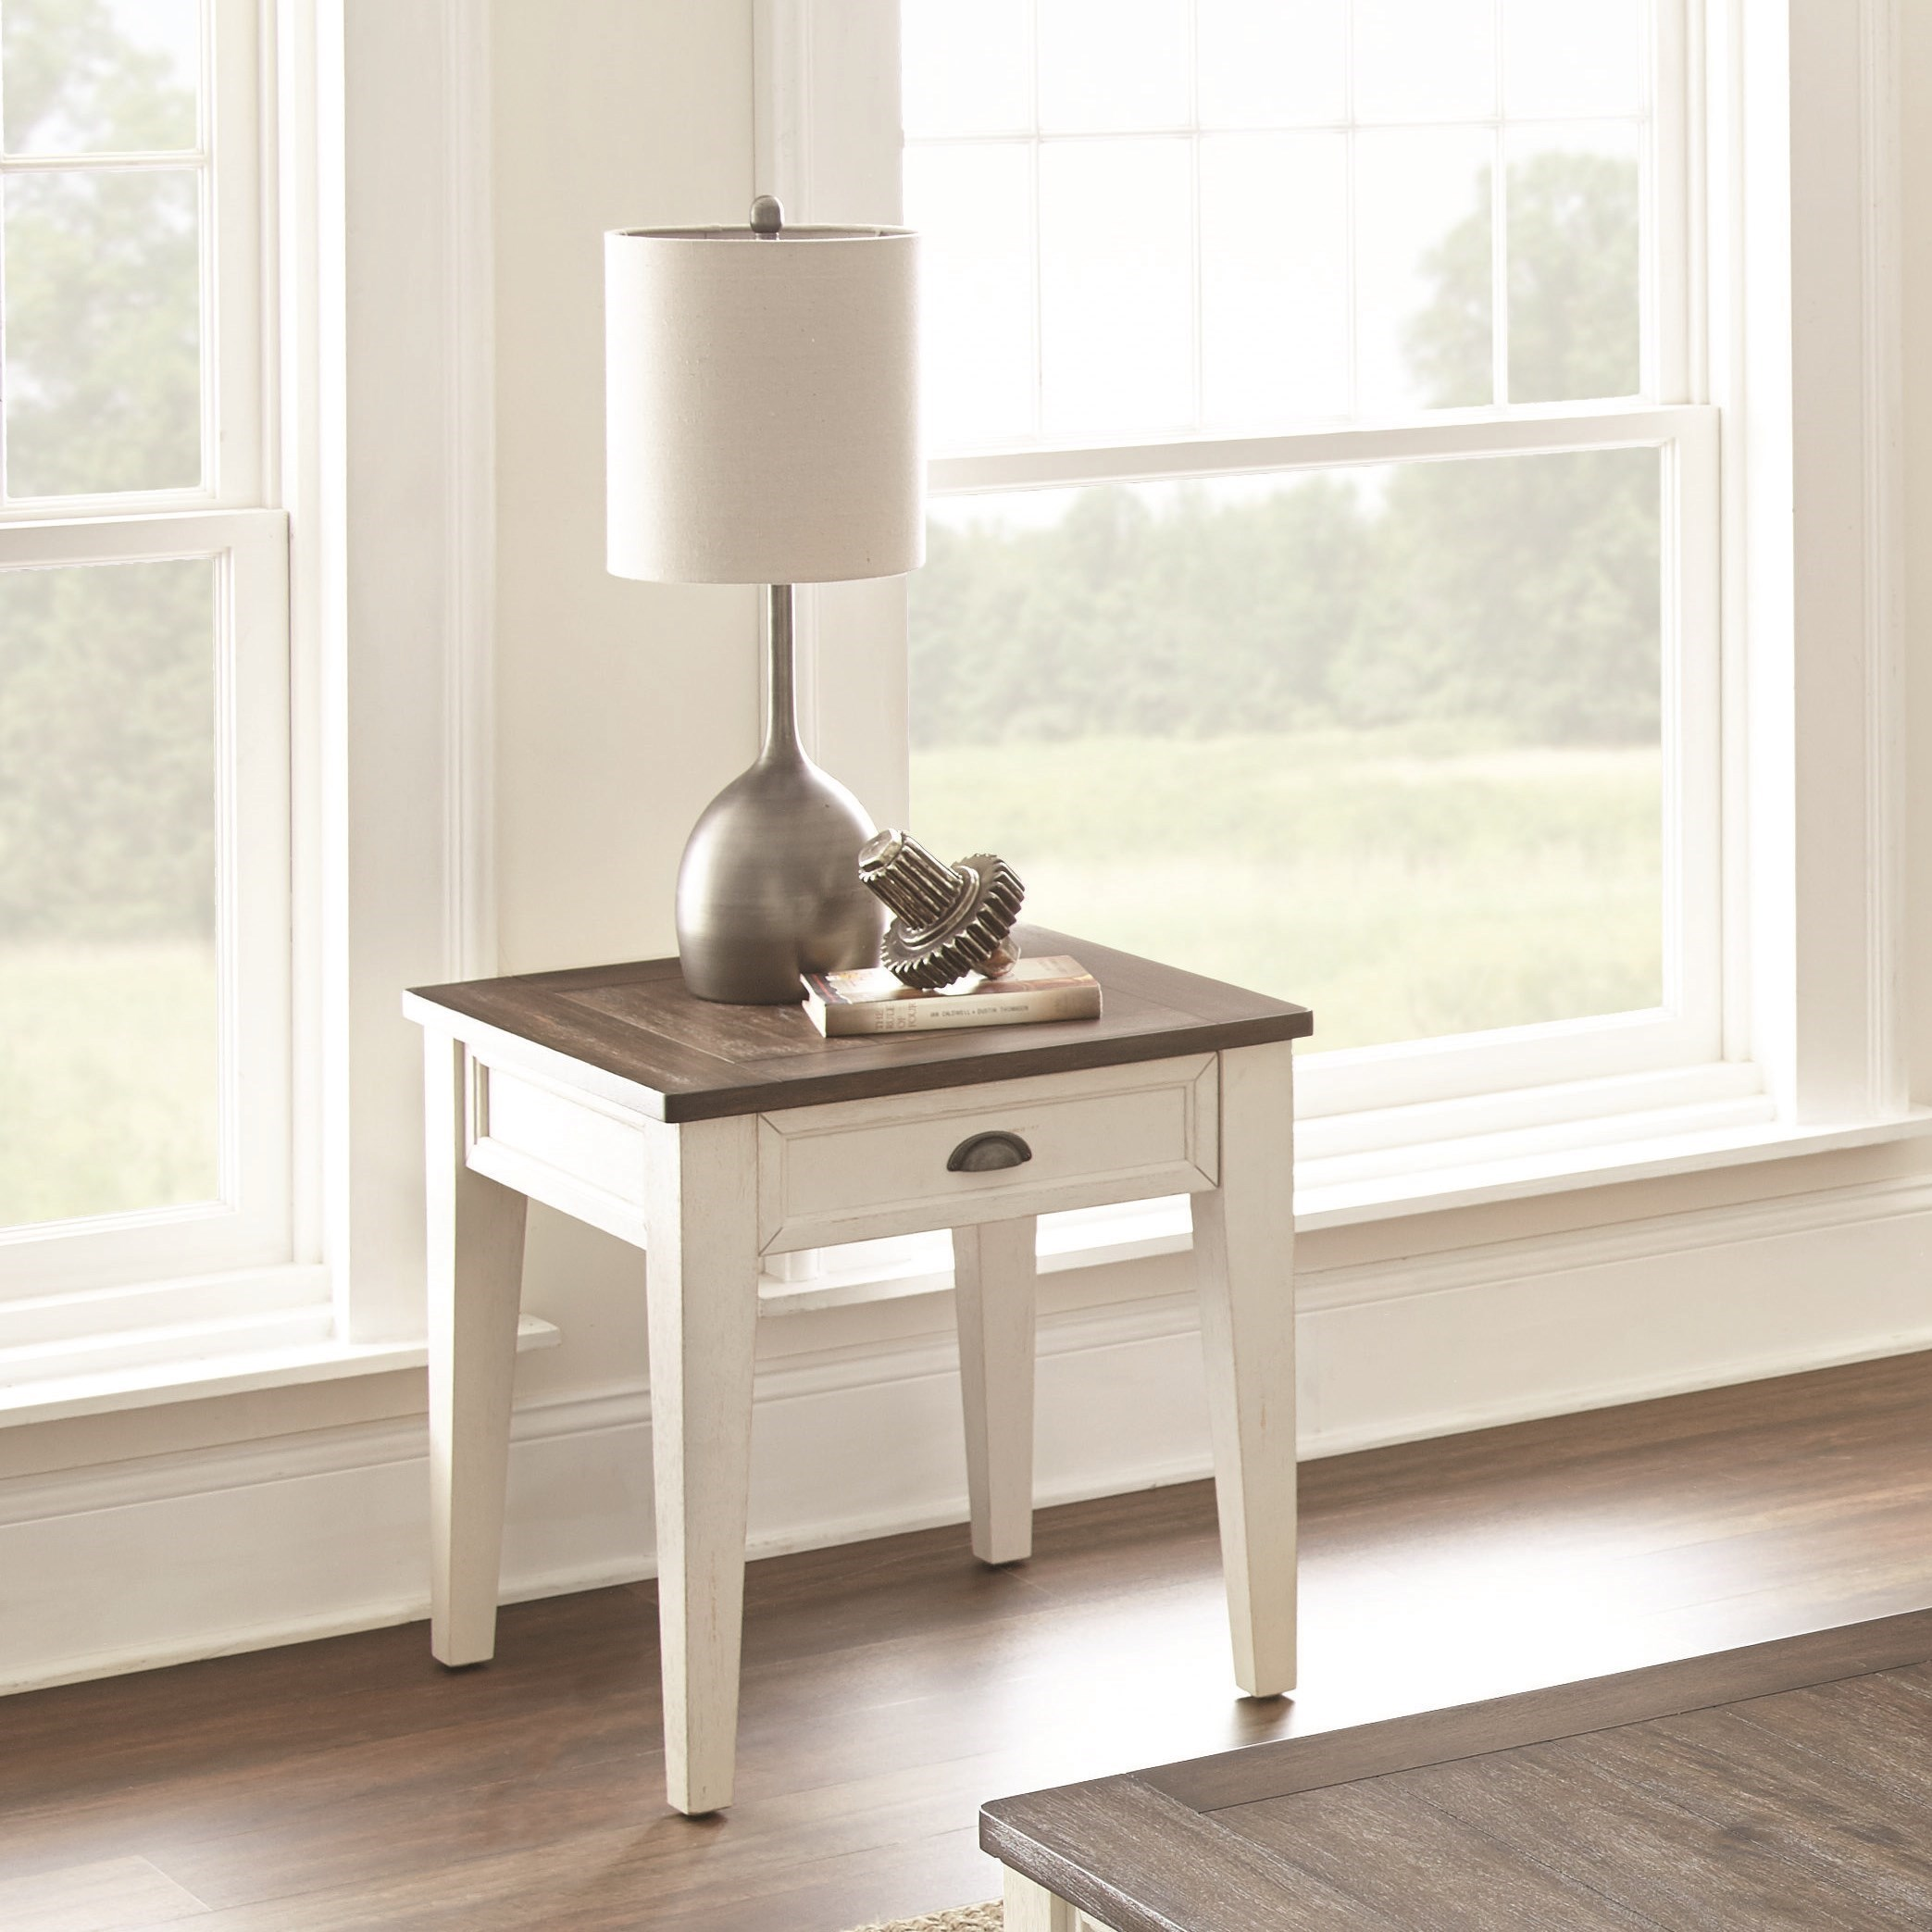 Cayla End Table by Steve Silver at Standard Furniture